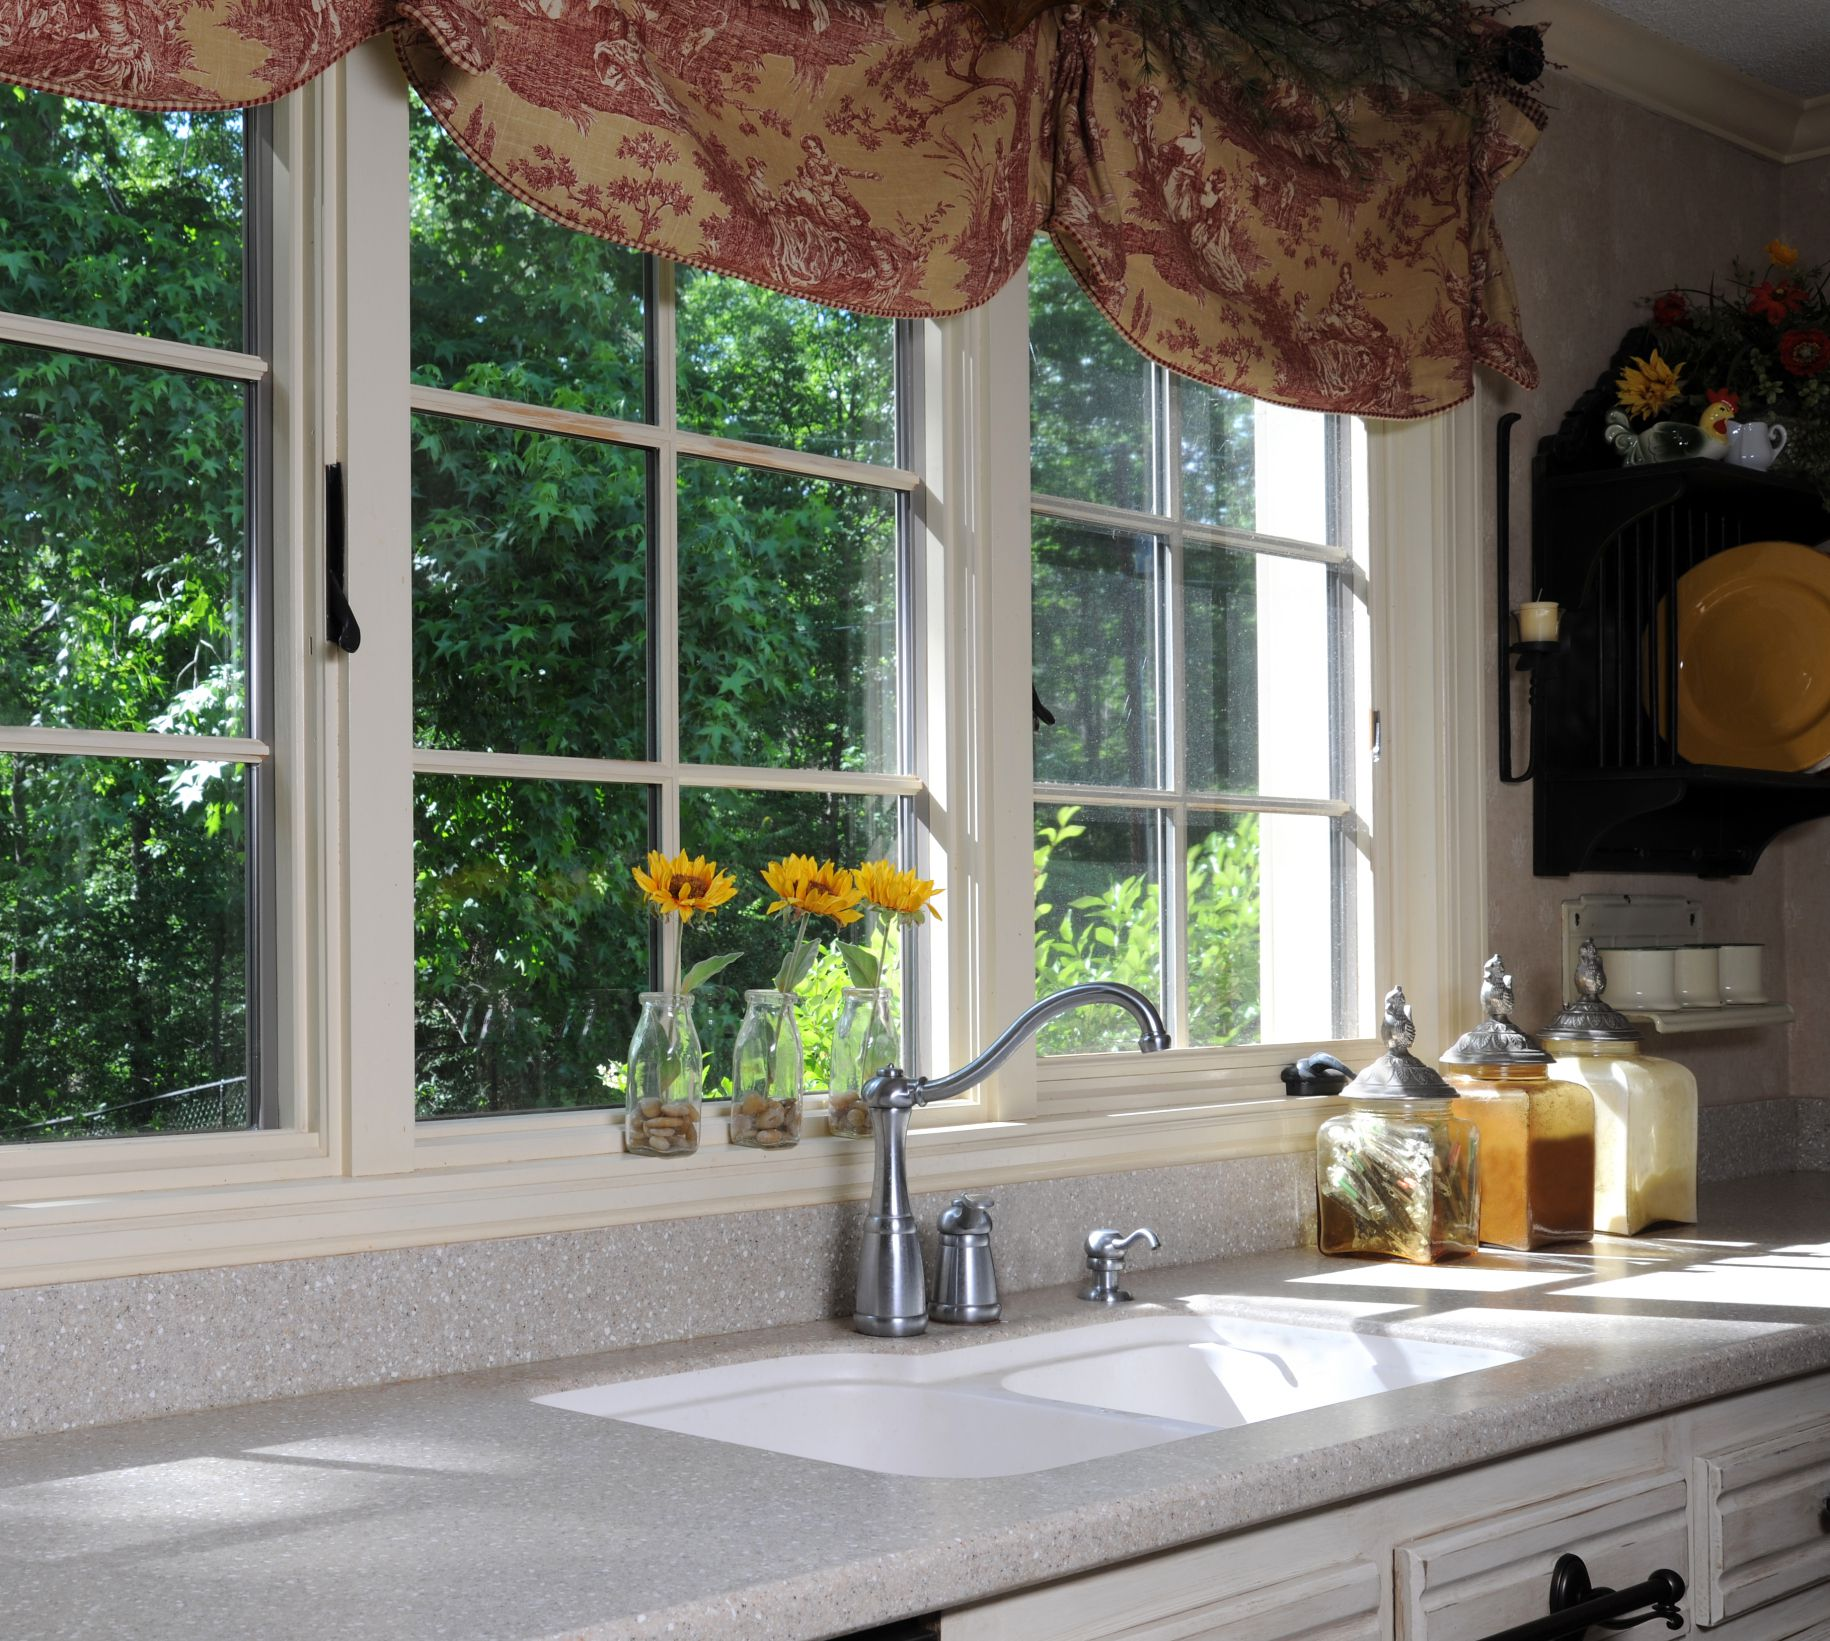 4 Kitchen Window Ideas To Get A Unique And Interesting